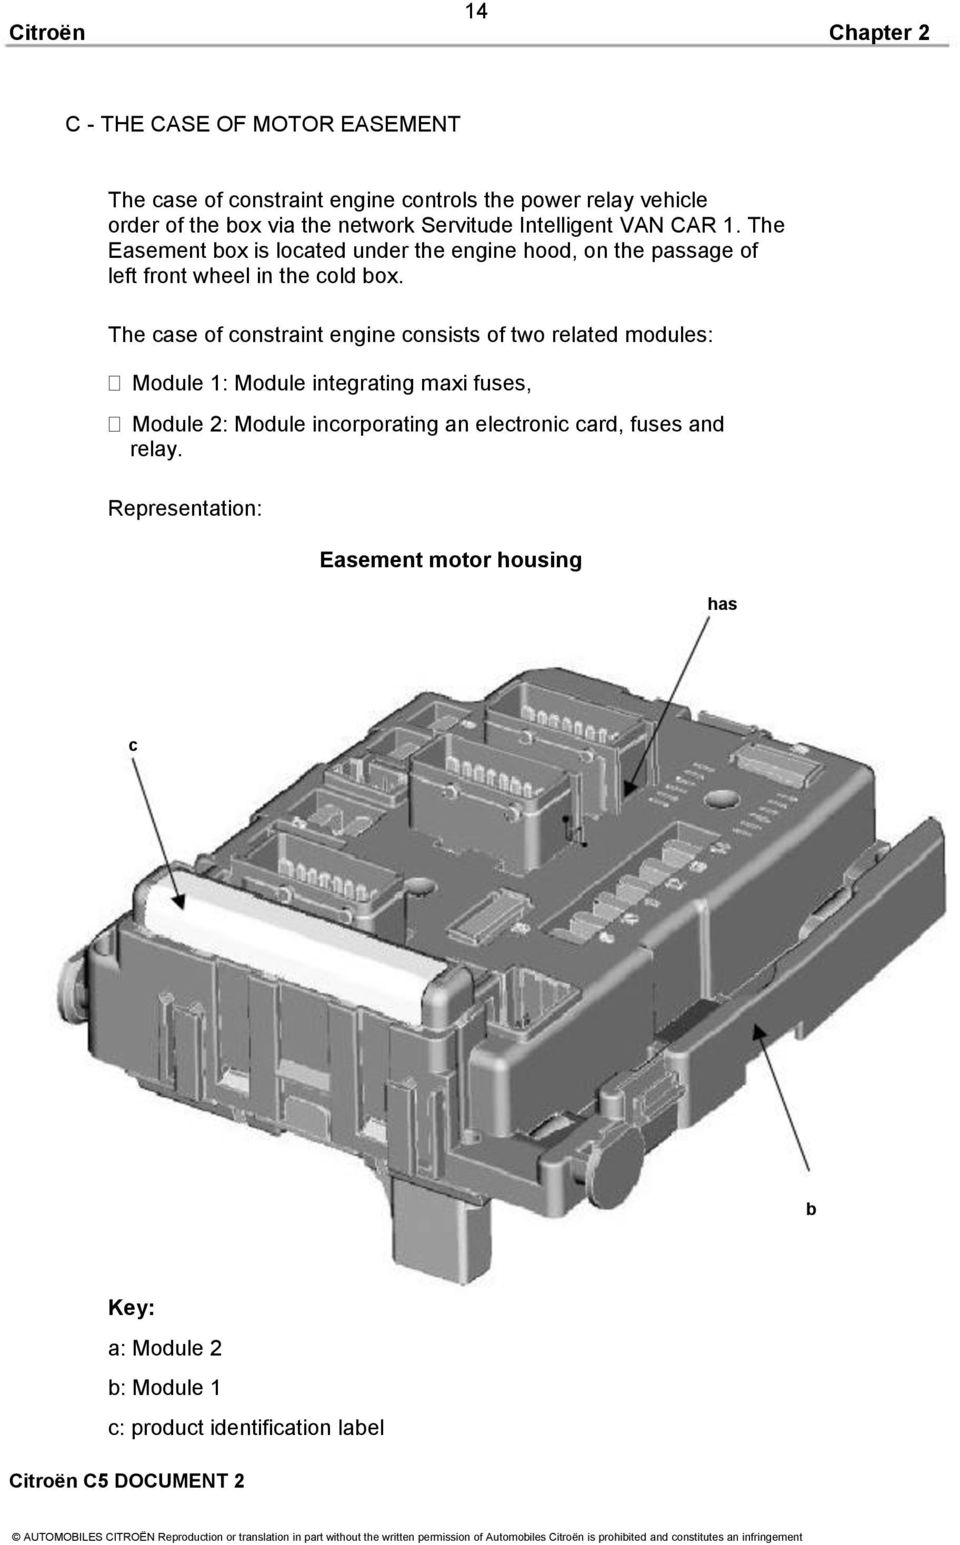 Citroen C5 Document 2 Pdf Land Rover Series Engine Diagrams The Easement Box Is Located Under Hood On Passage Of Left Front